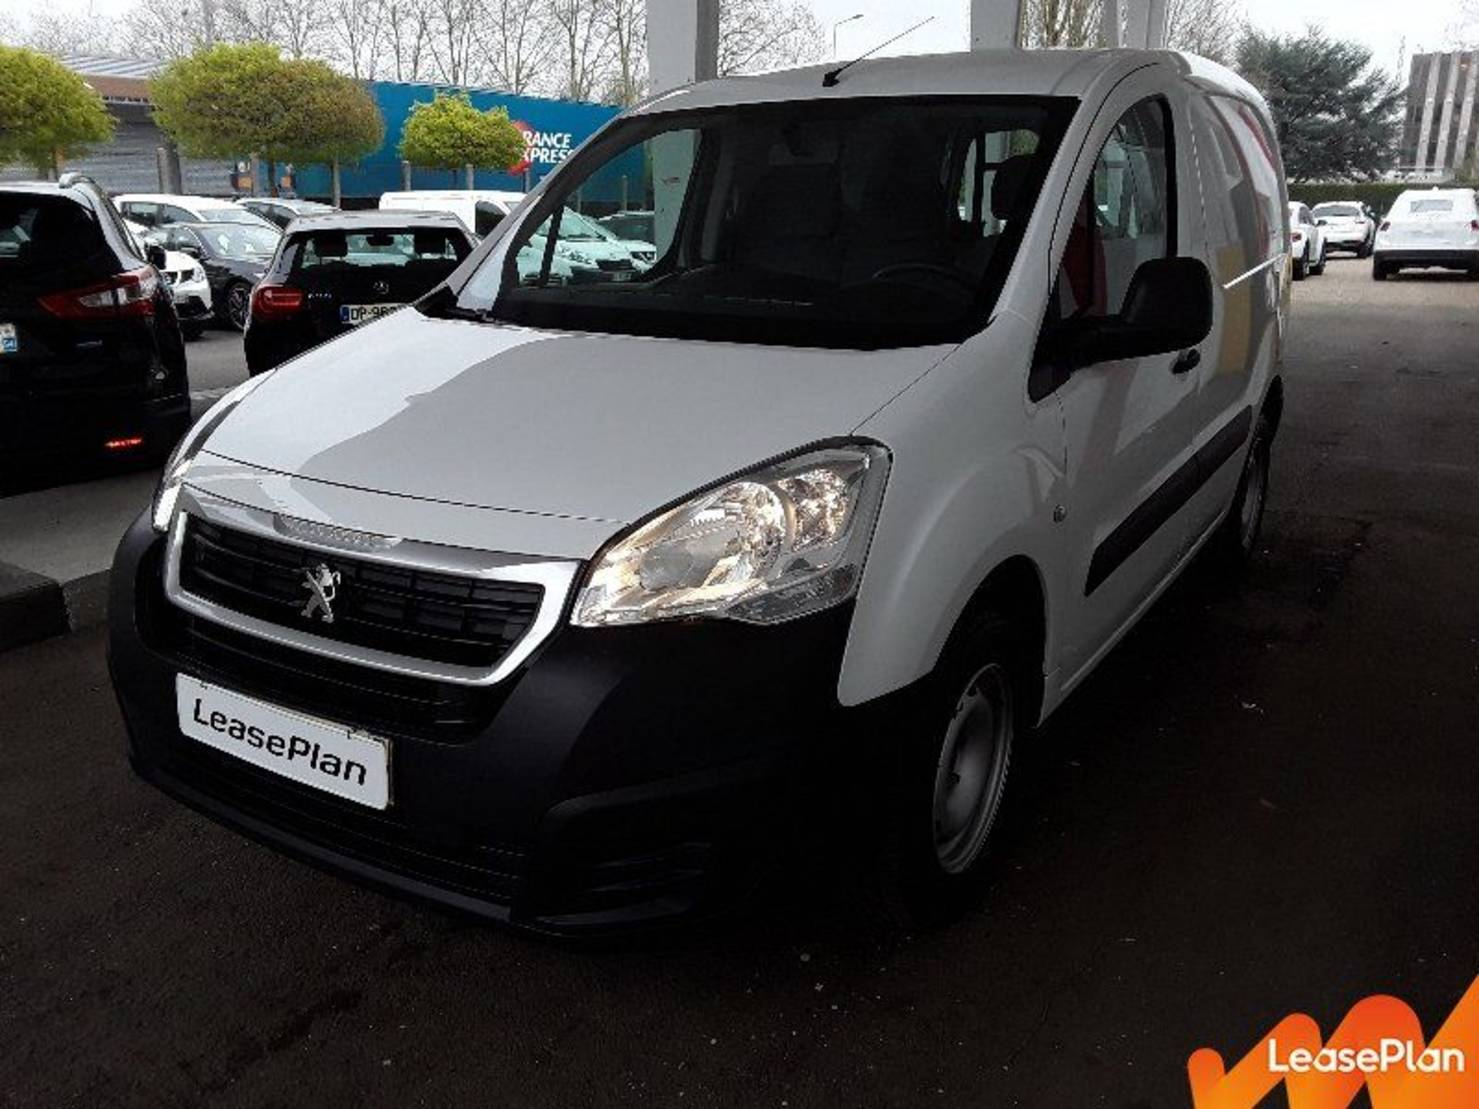 Peugeot Partner 120 L1 1.6 HDI 75 BVM5, PACK CLIM detail1